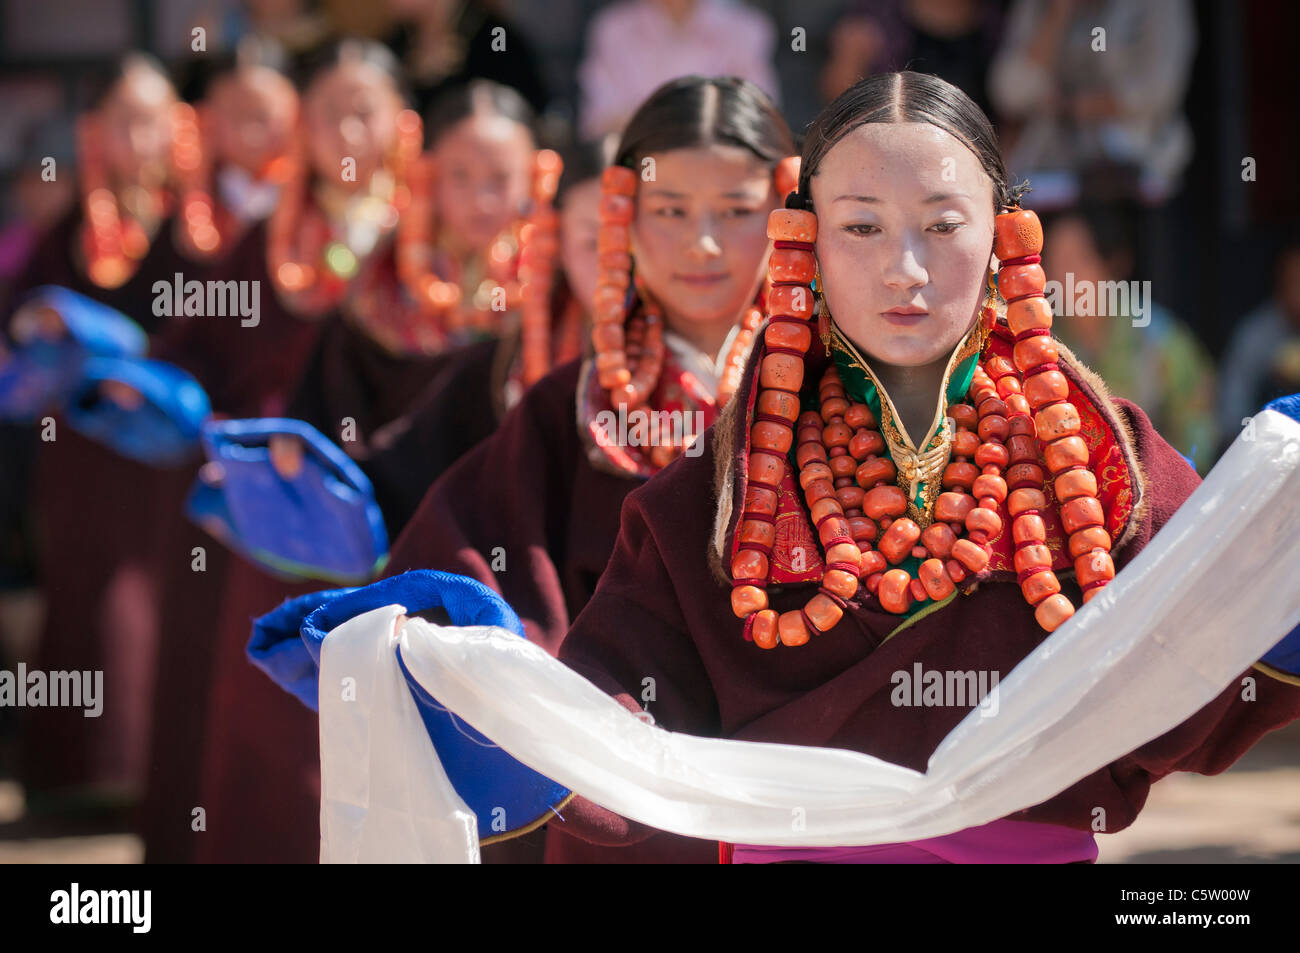 Young girls wearing heavy coral jewelry perform at shaman harvest festival, Tongren, Qinghai Province, China - Stock Image